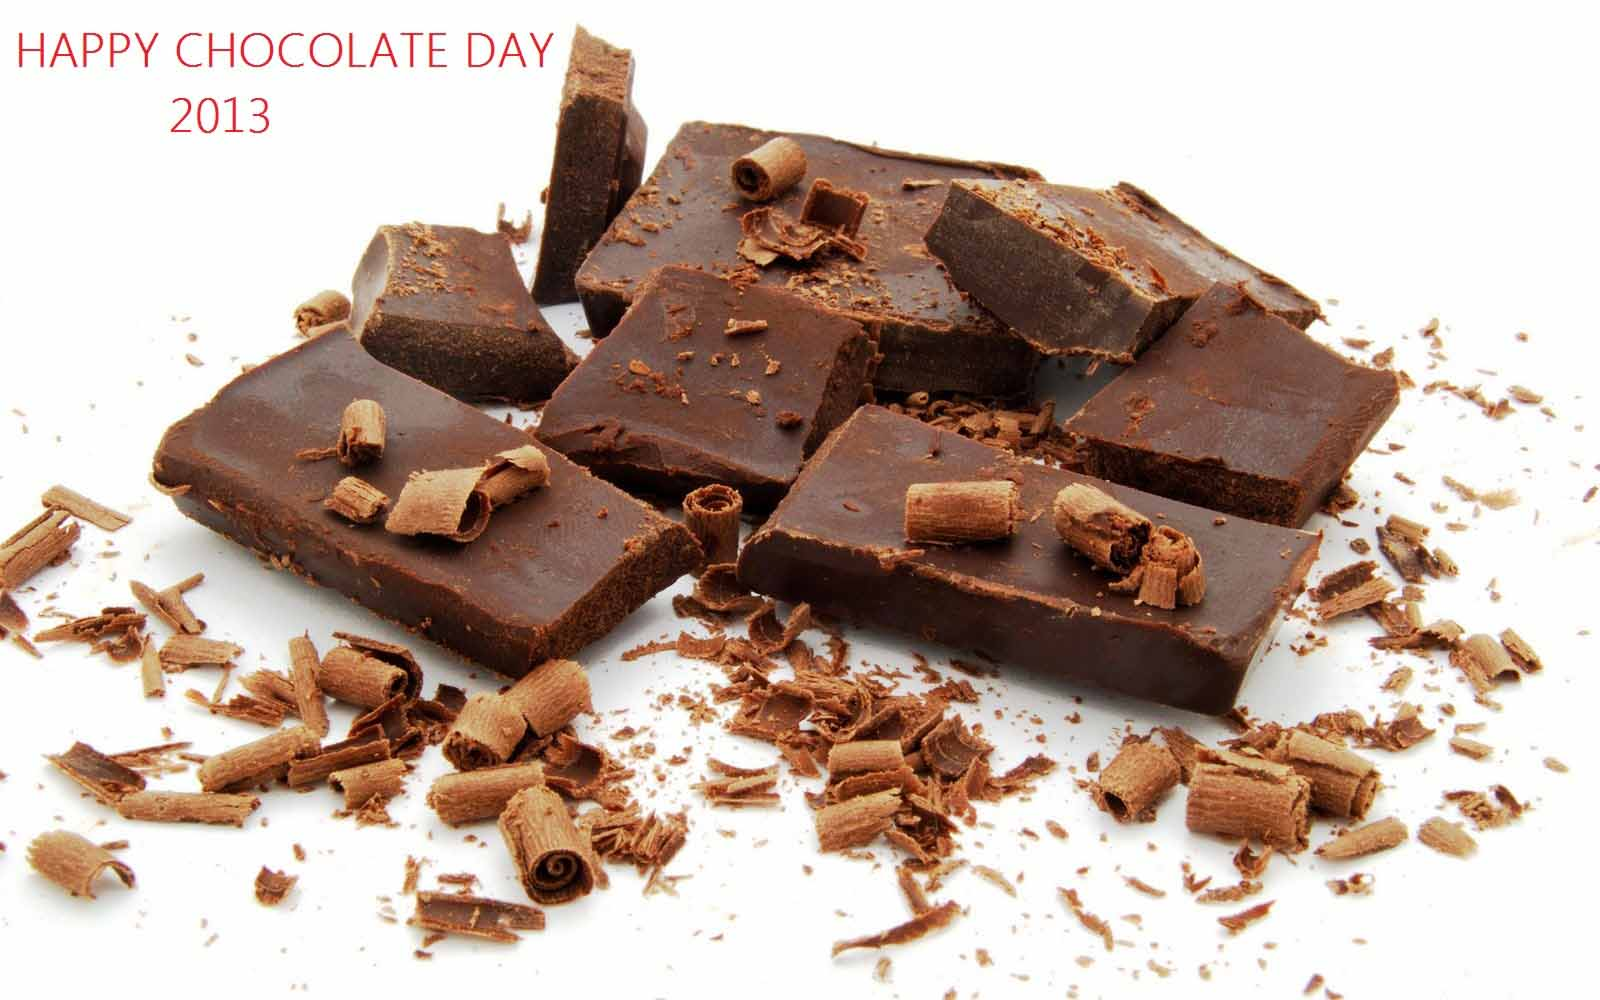 Happy Chocolate Day 2013 Hd Wallpapers - Happy Chocolate Day Gif 2019 , HD Wallpaper & Backgrounds